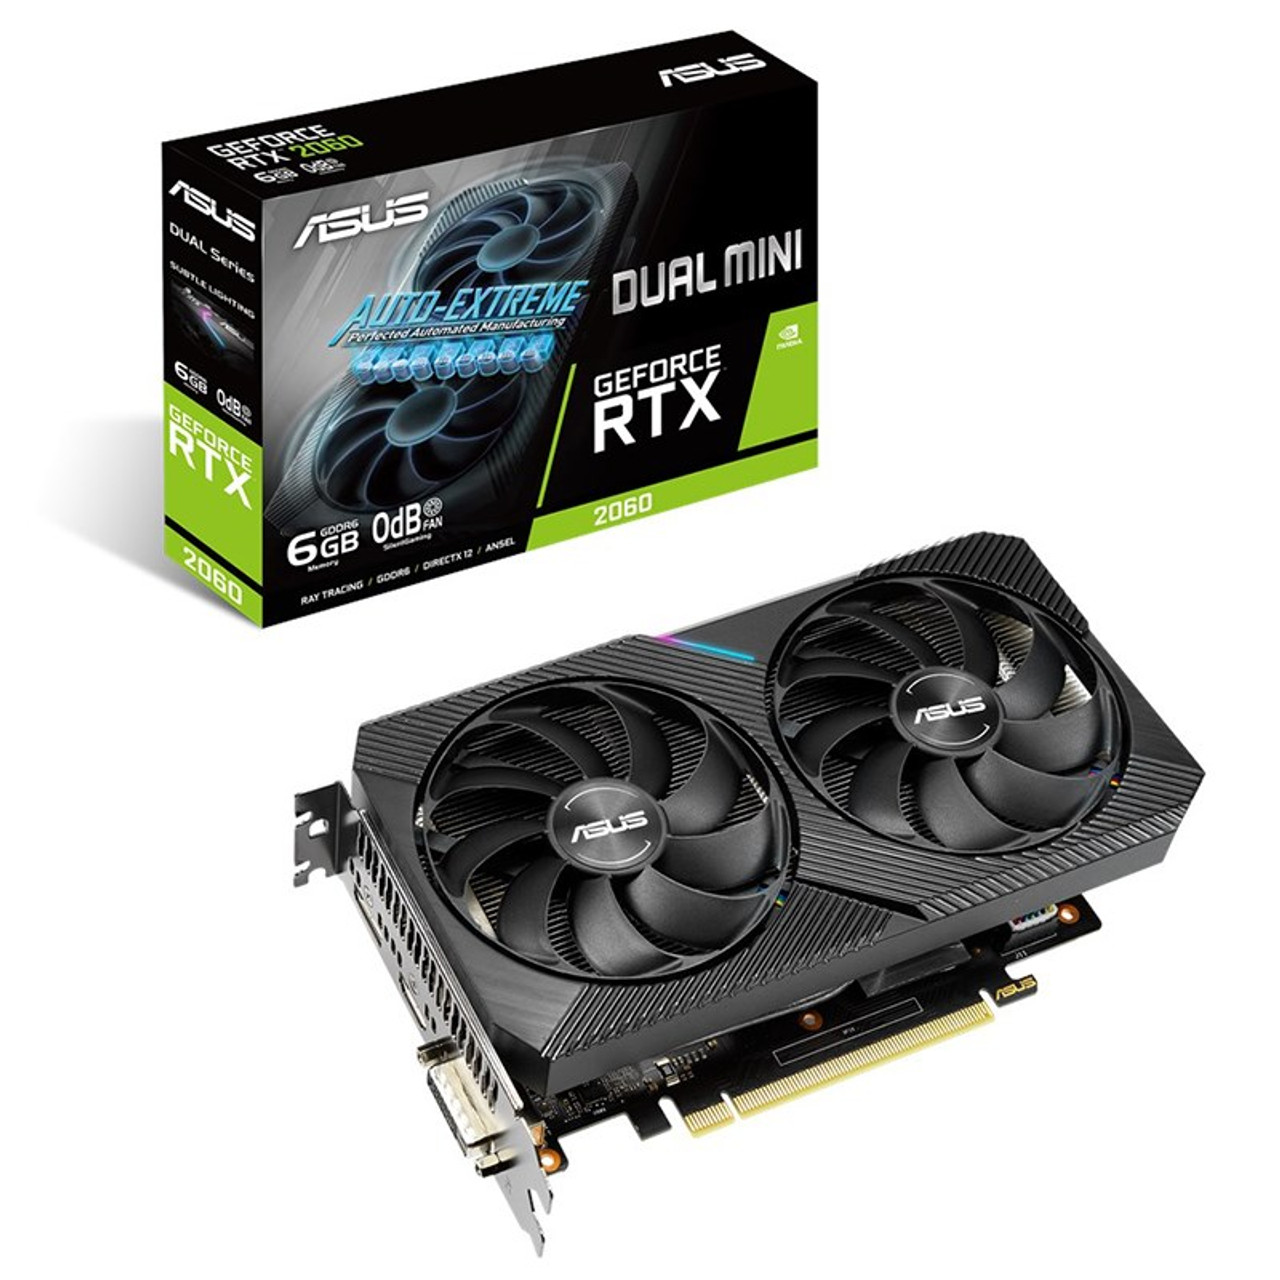 Image for Asus GeForce RTX 2060 Dual Mini 6GB Video Card CX Computer Superstore